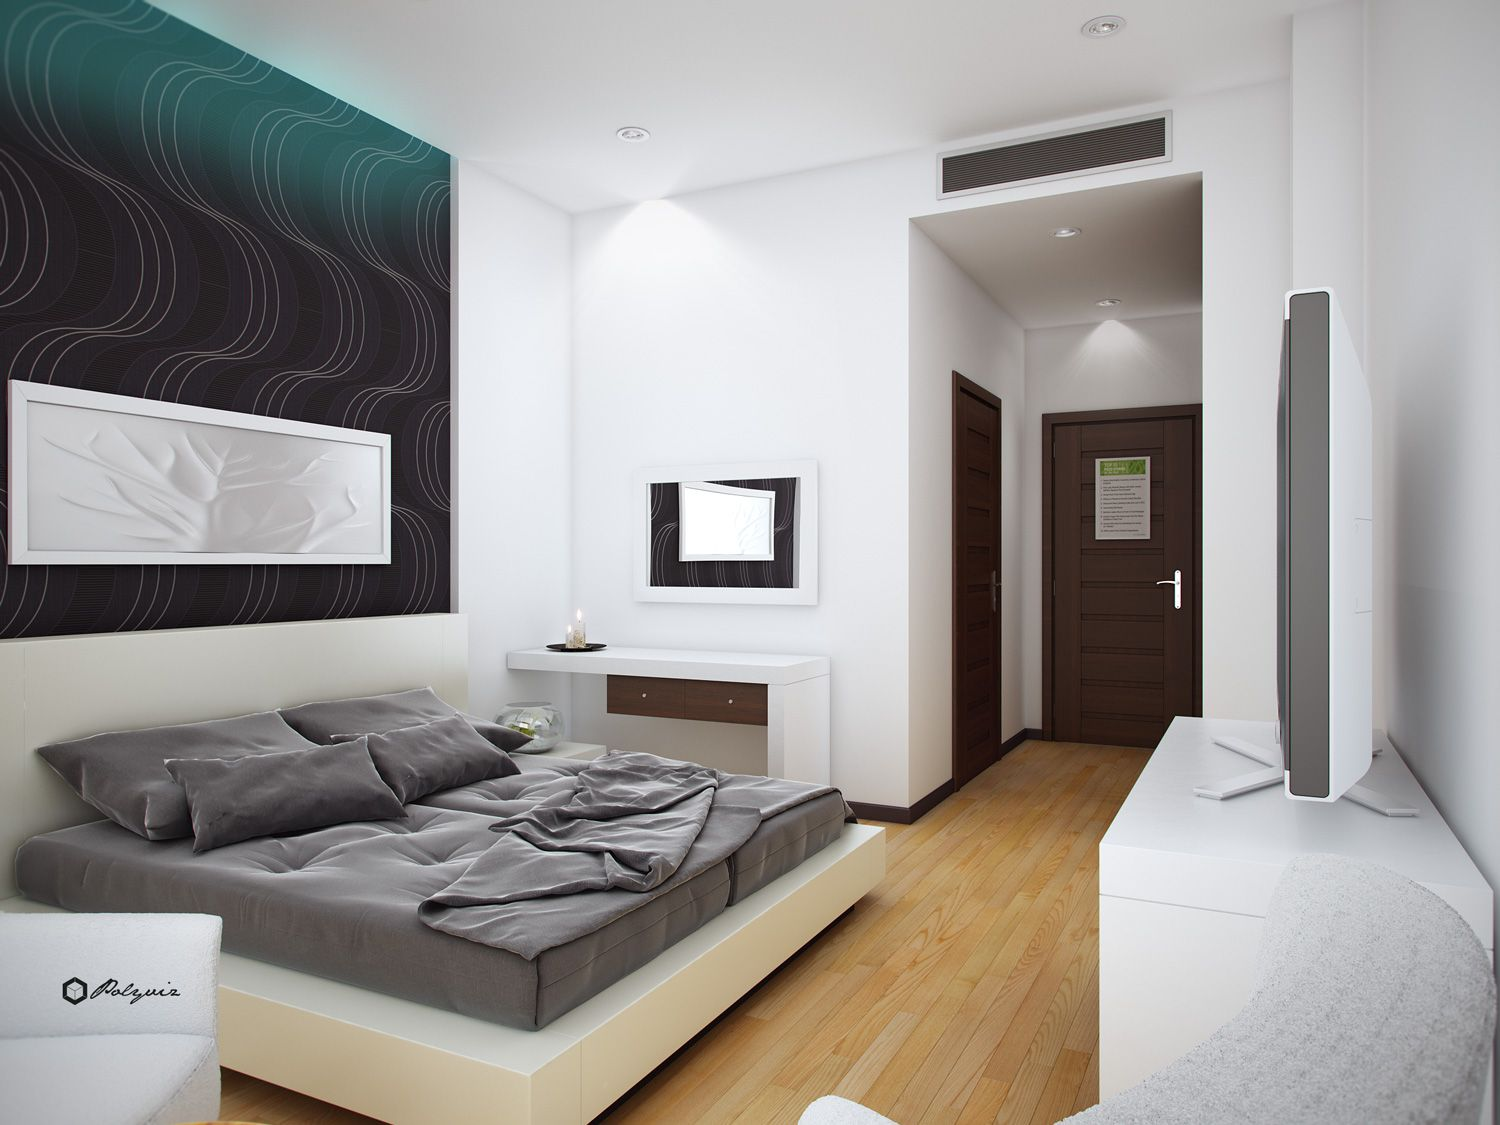 Modern hotel room design google search room design for Hotel bedroom design